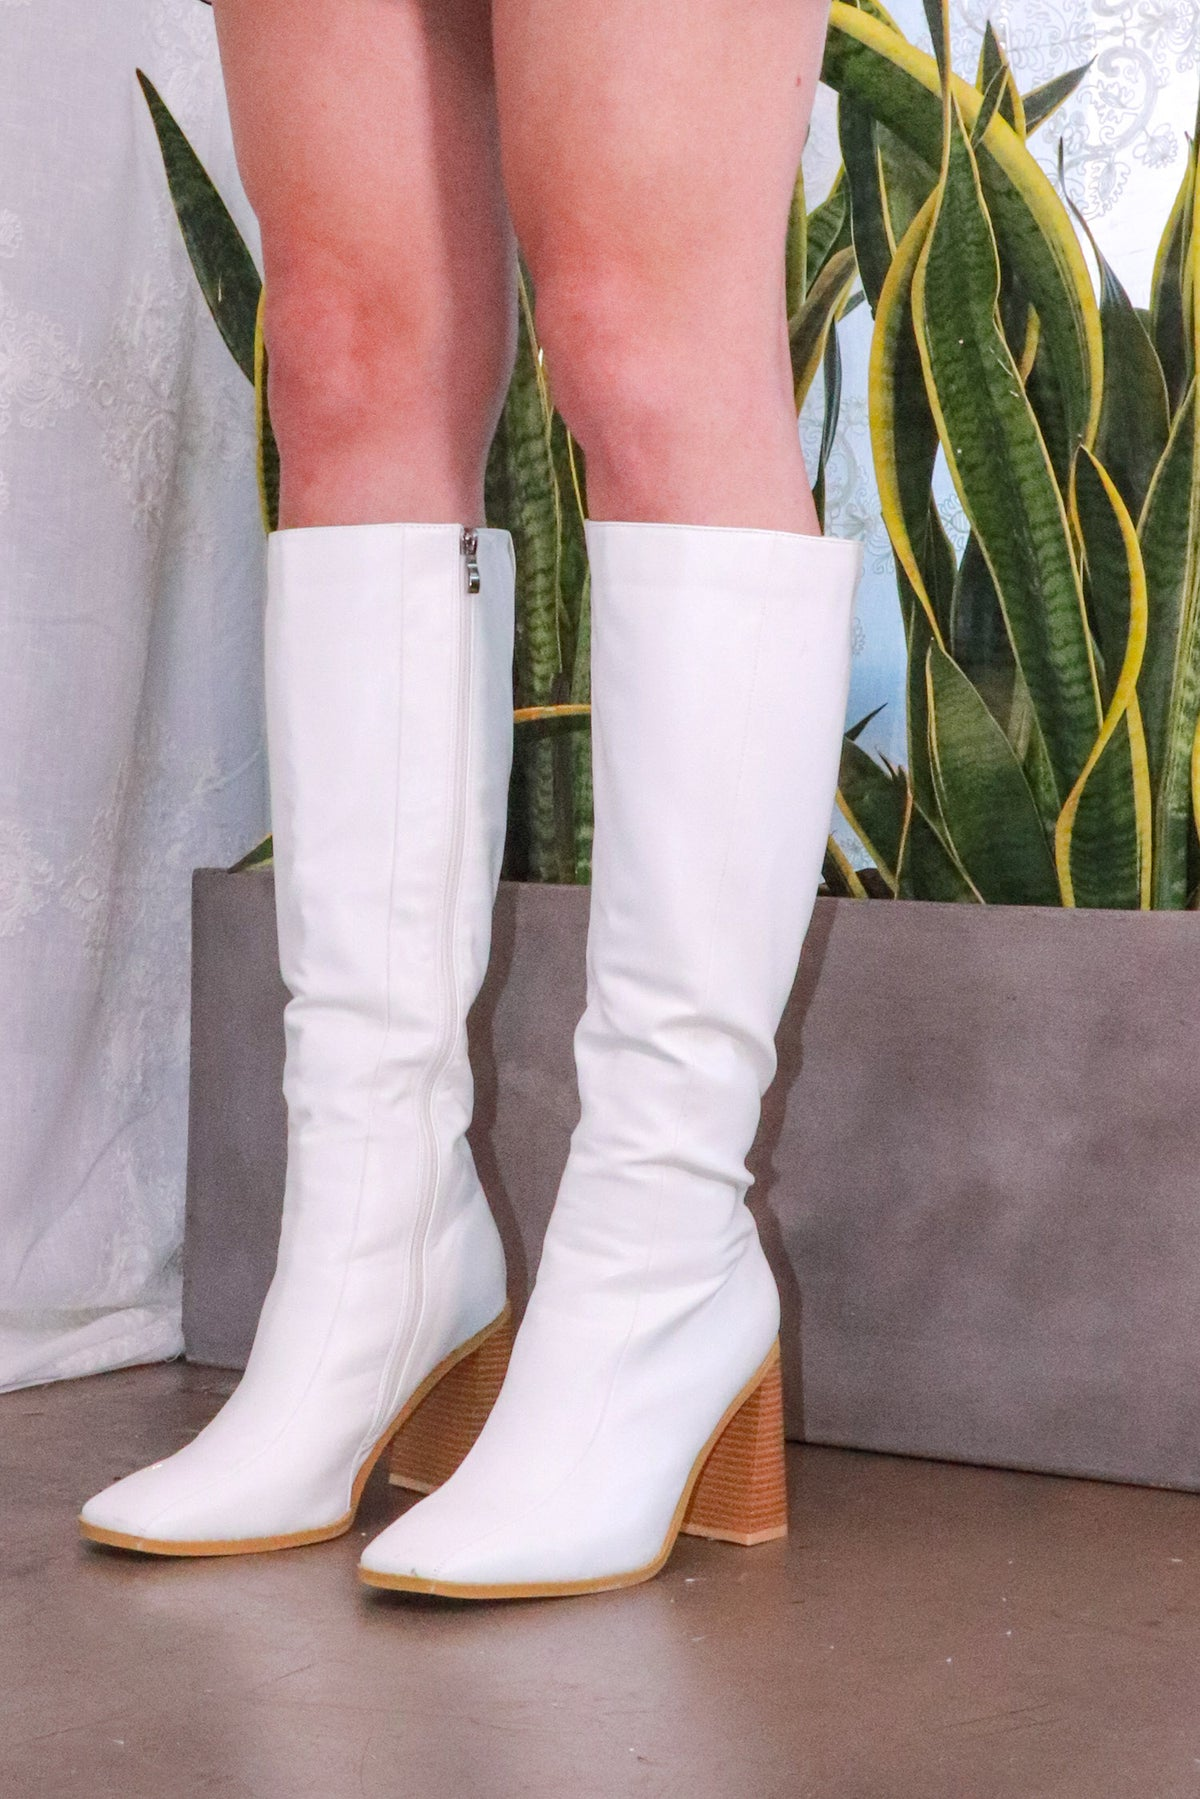 Nasty Gal - White Square Toe Knee High Boot - 9